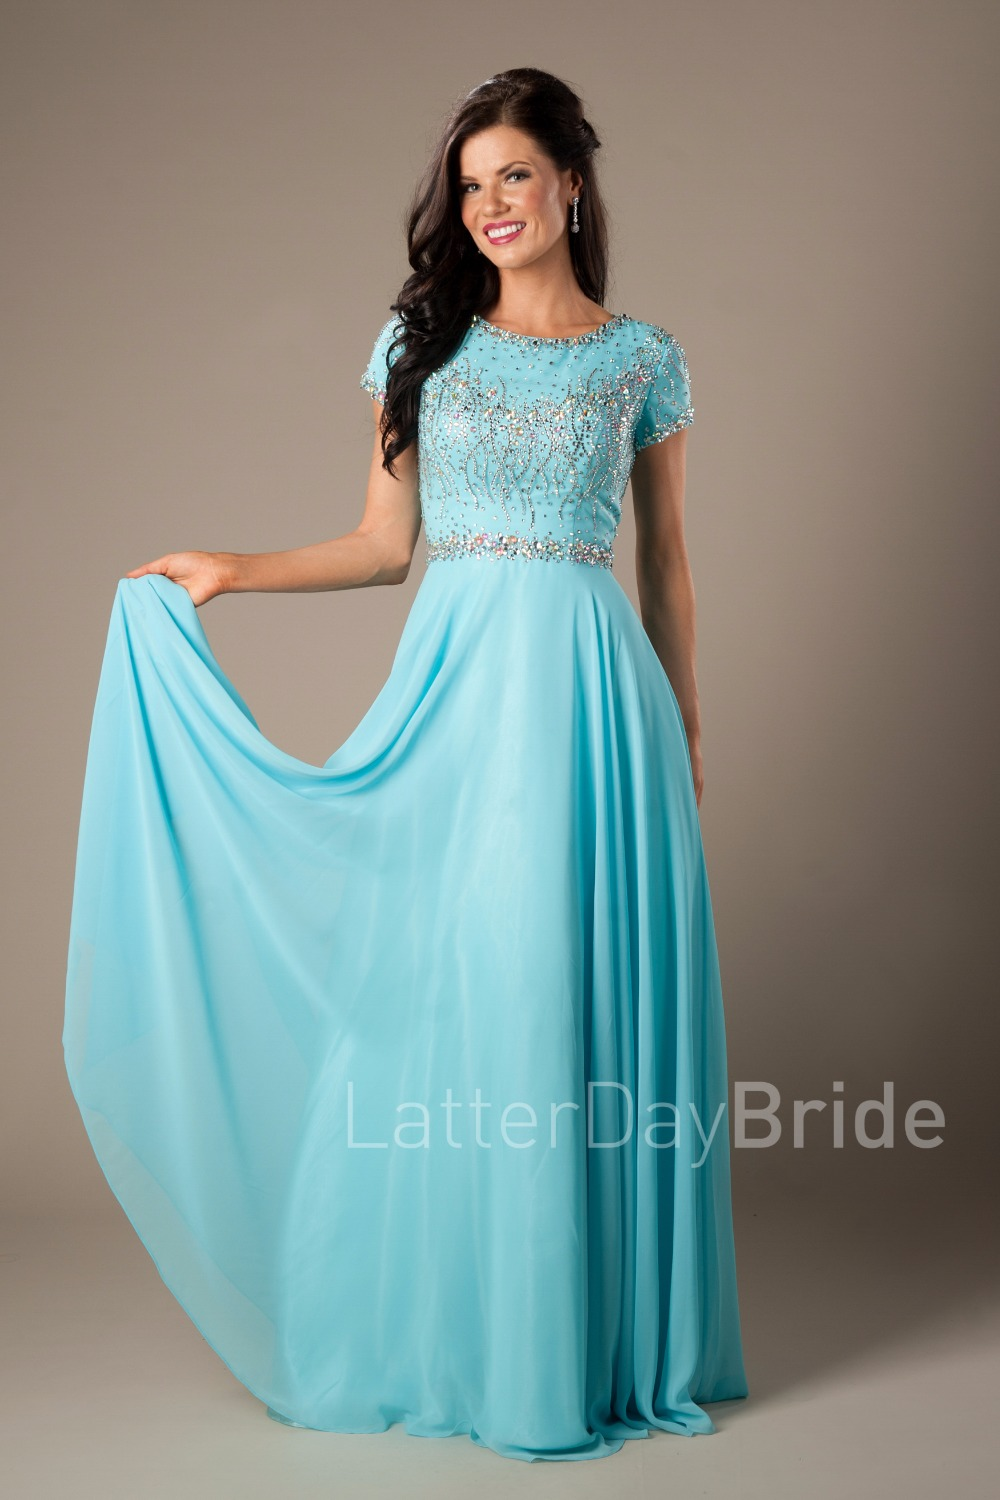 Compare Prices on Teen Long Sleeve Formal Gowns- Online Shopping ...